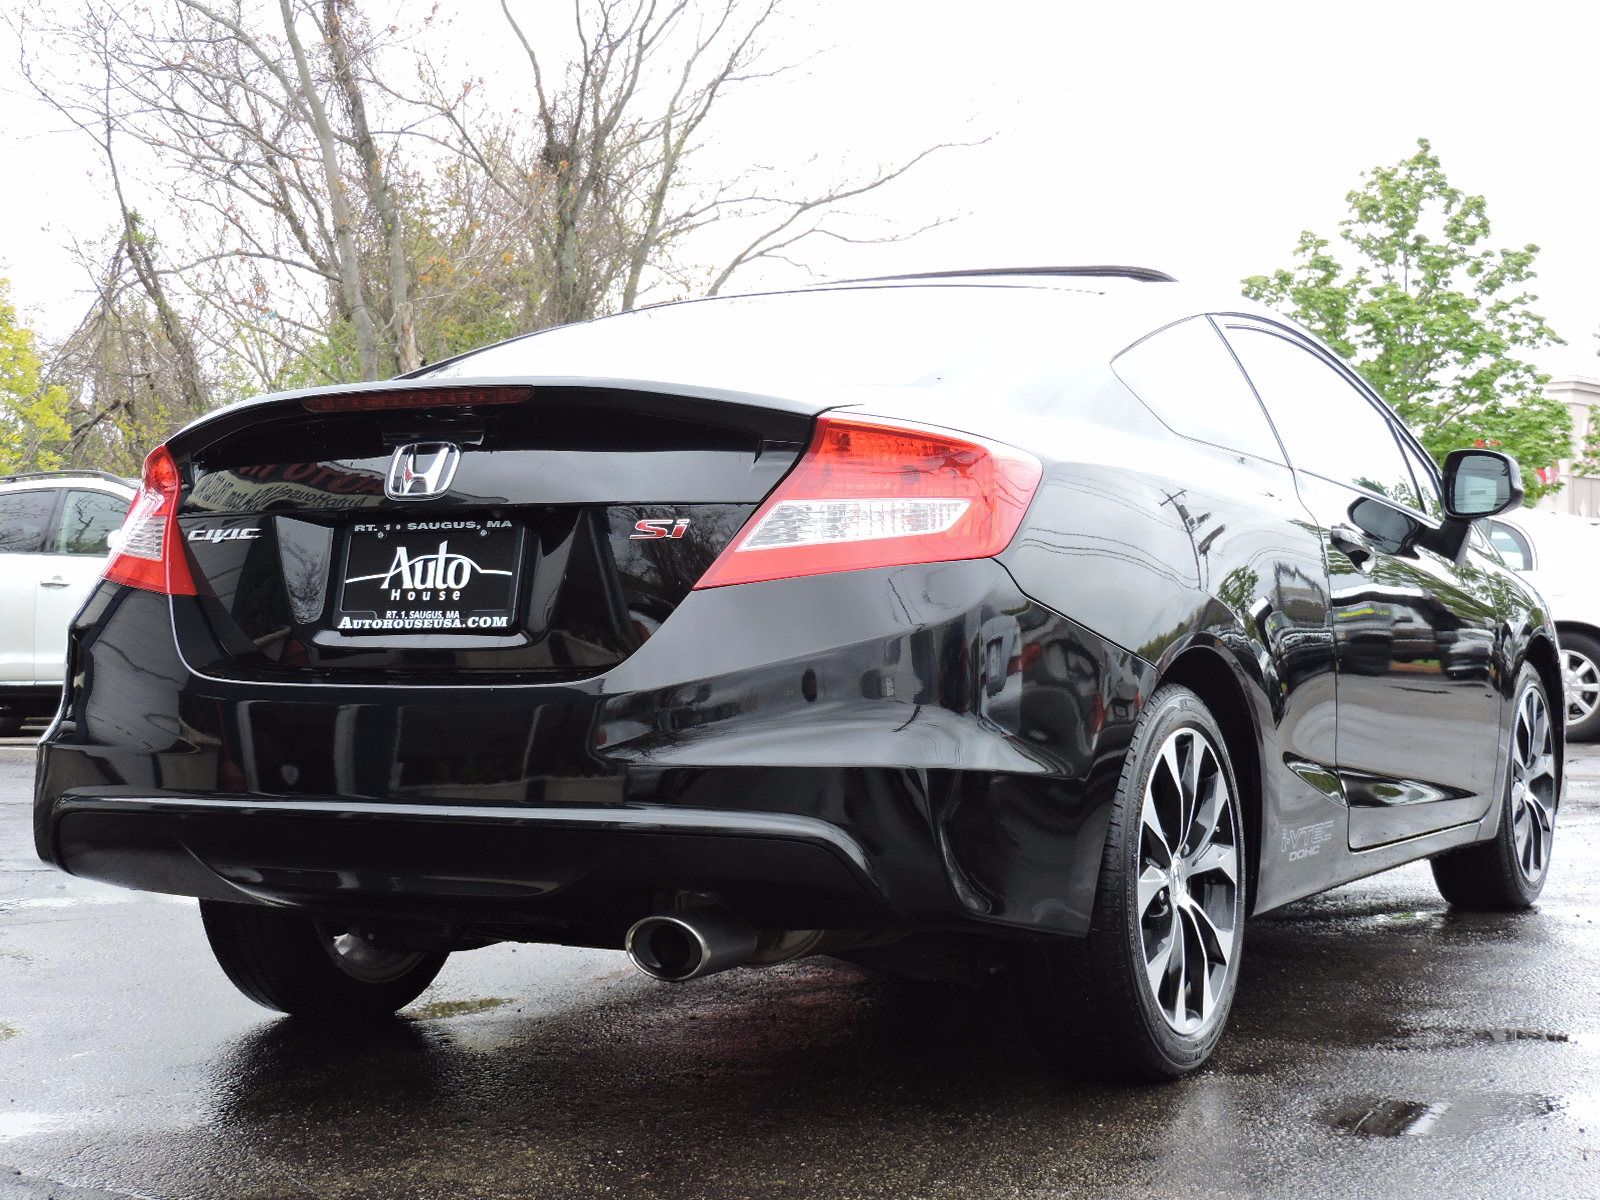 2013 Honda Civic Coupe Si - 6 Speed Manual